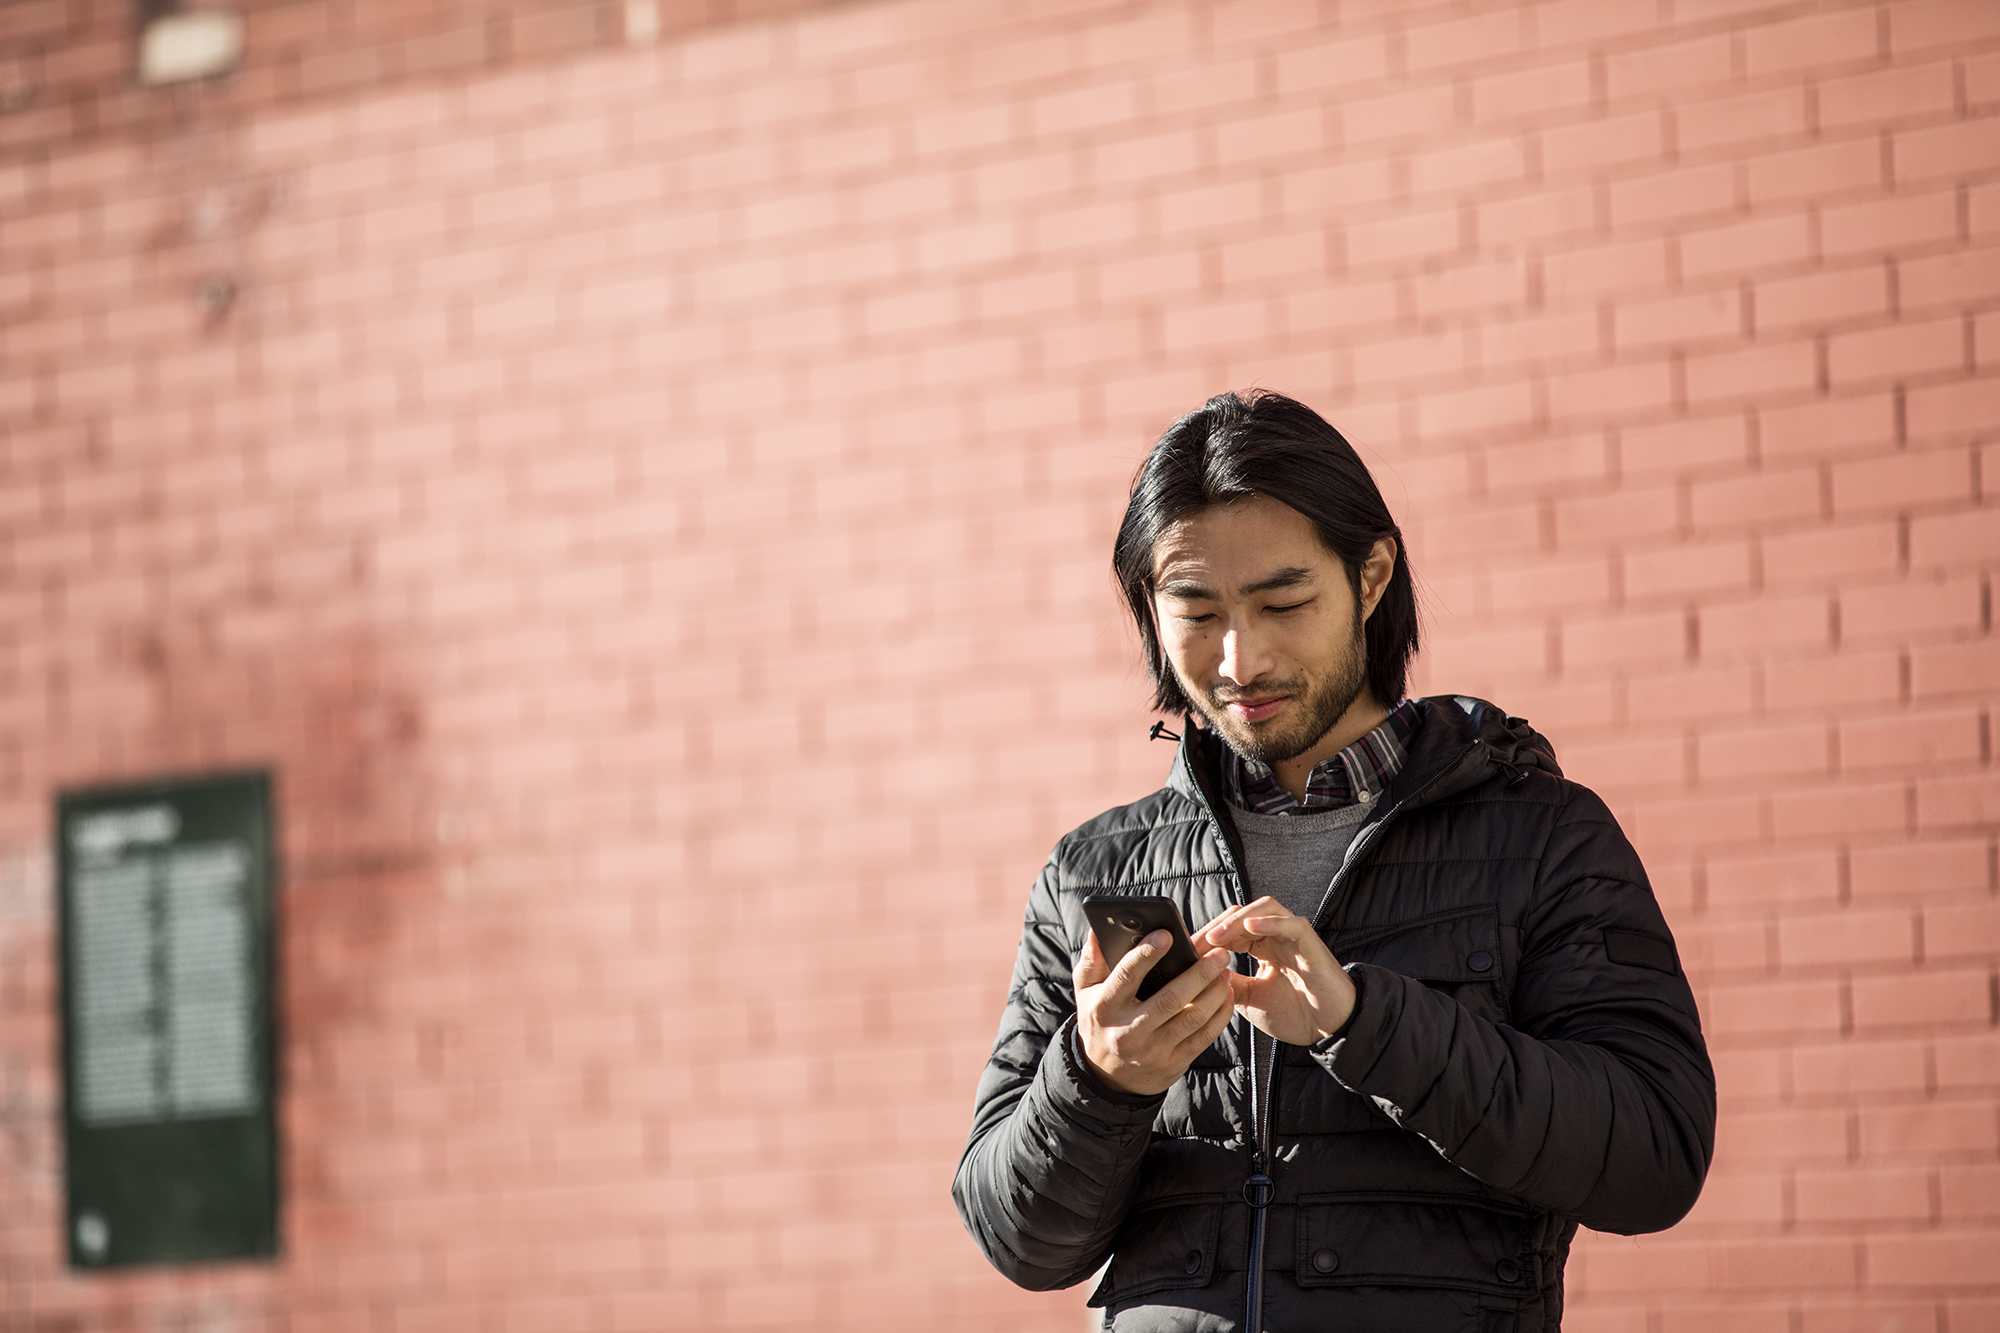 Man holding and interacting with cell phone in front of brick wall